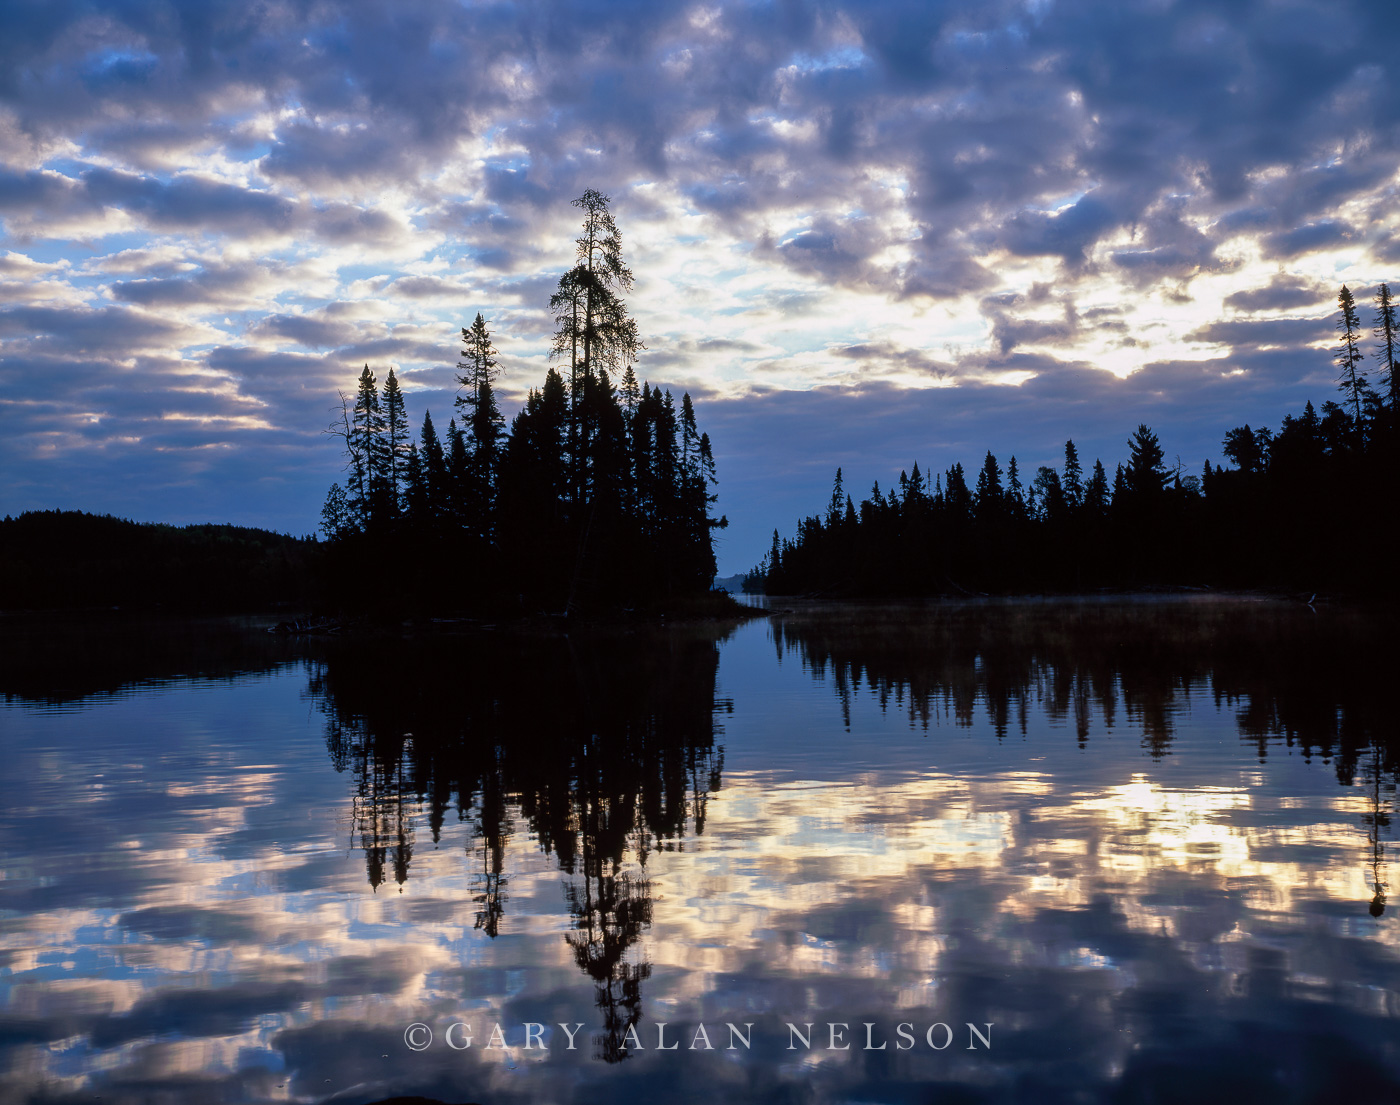 boundary waters, canoe area, wilderness, minnesota, photo